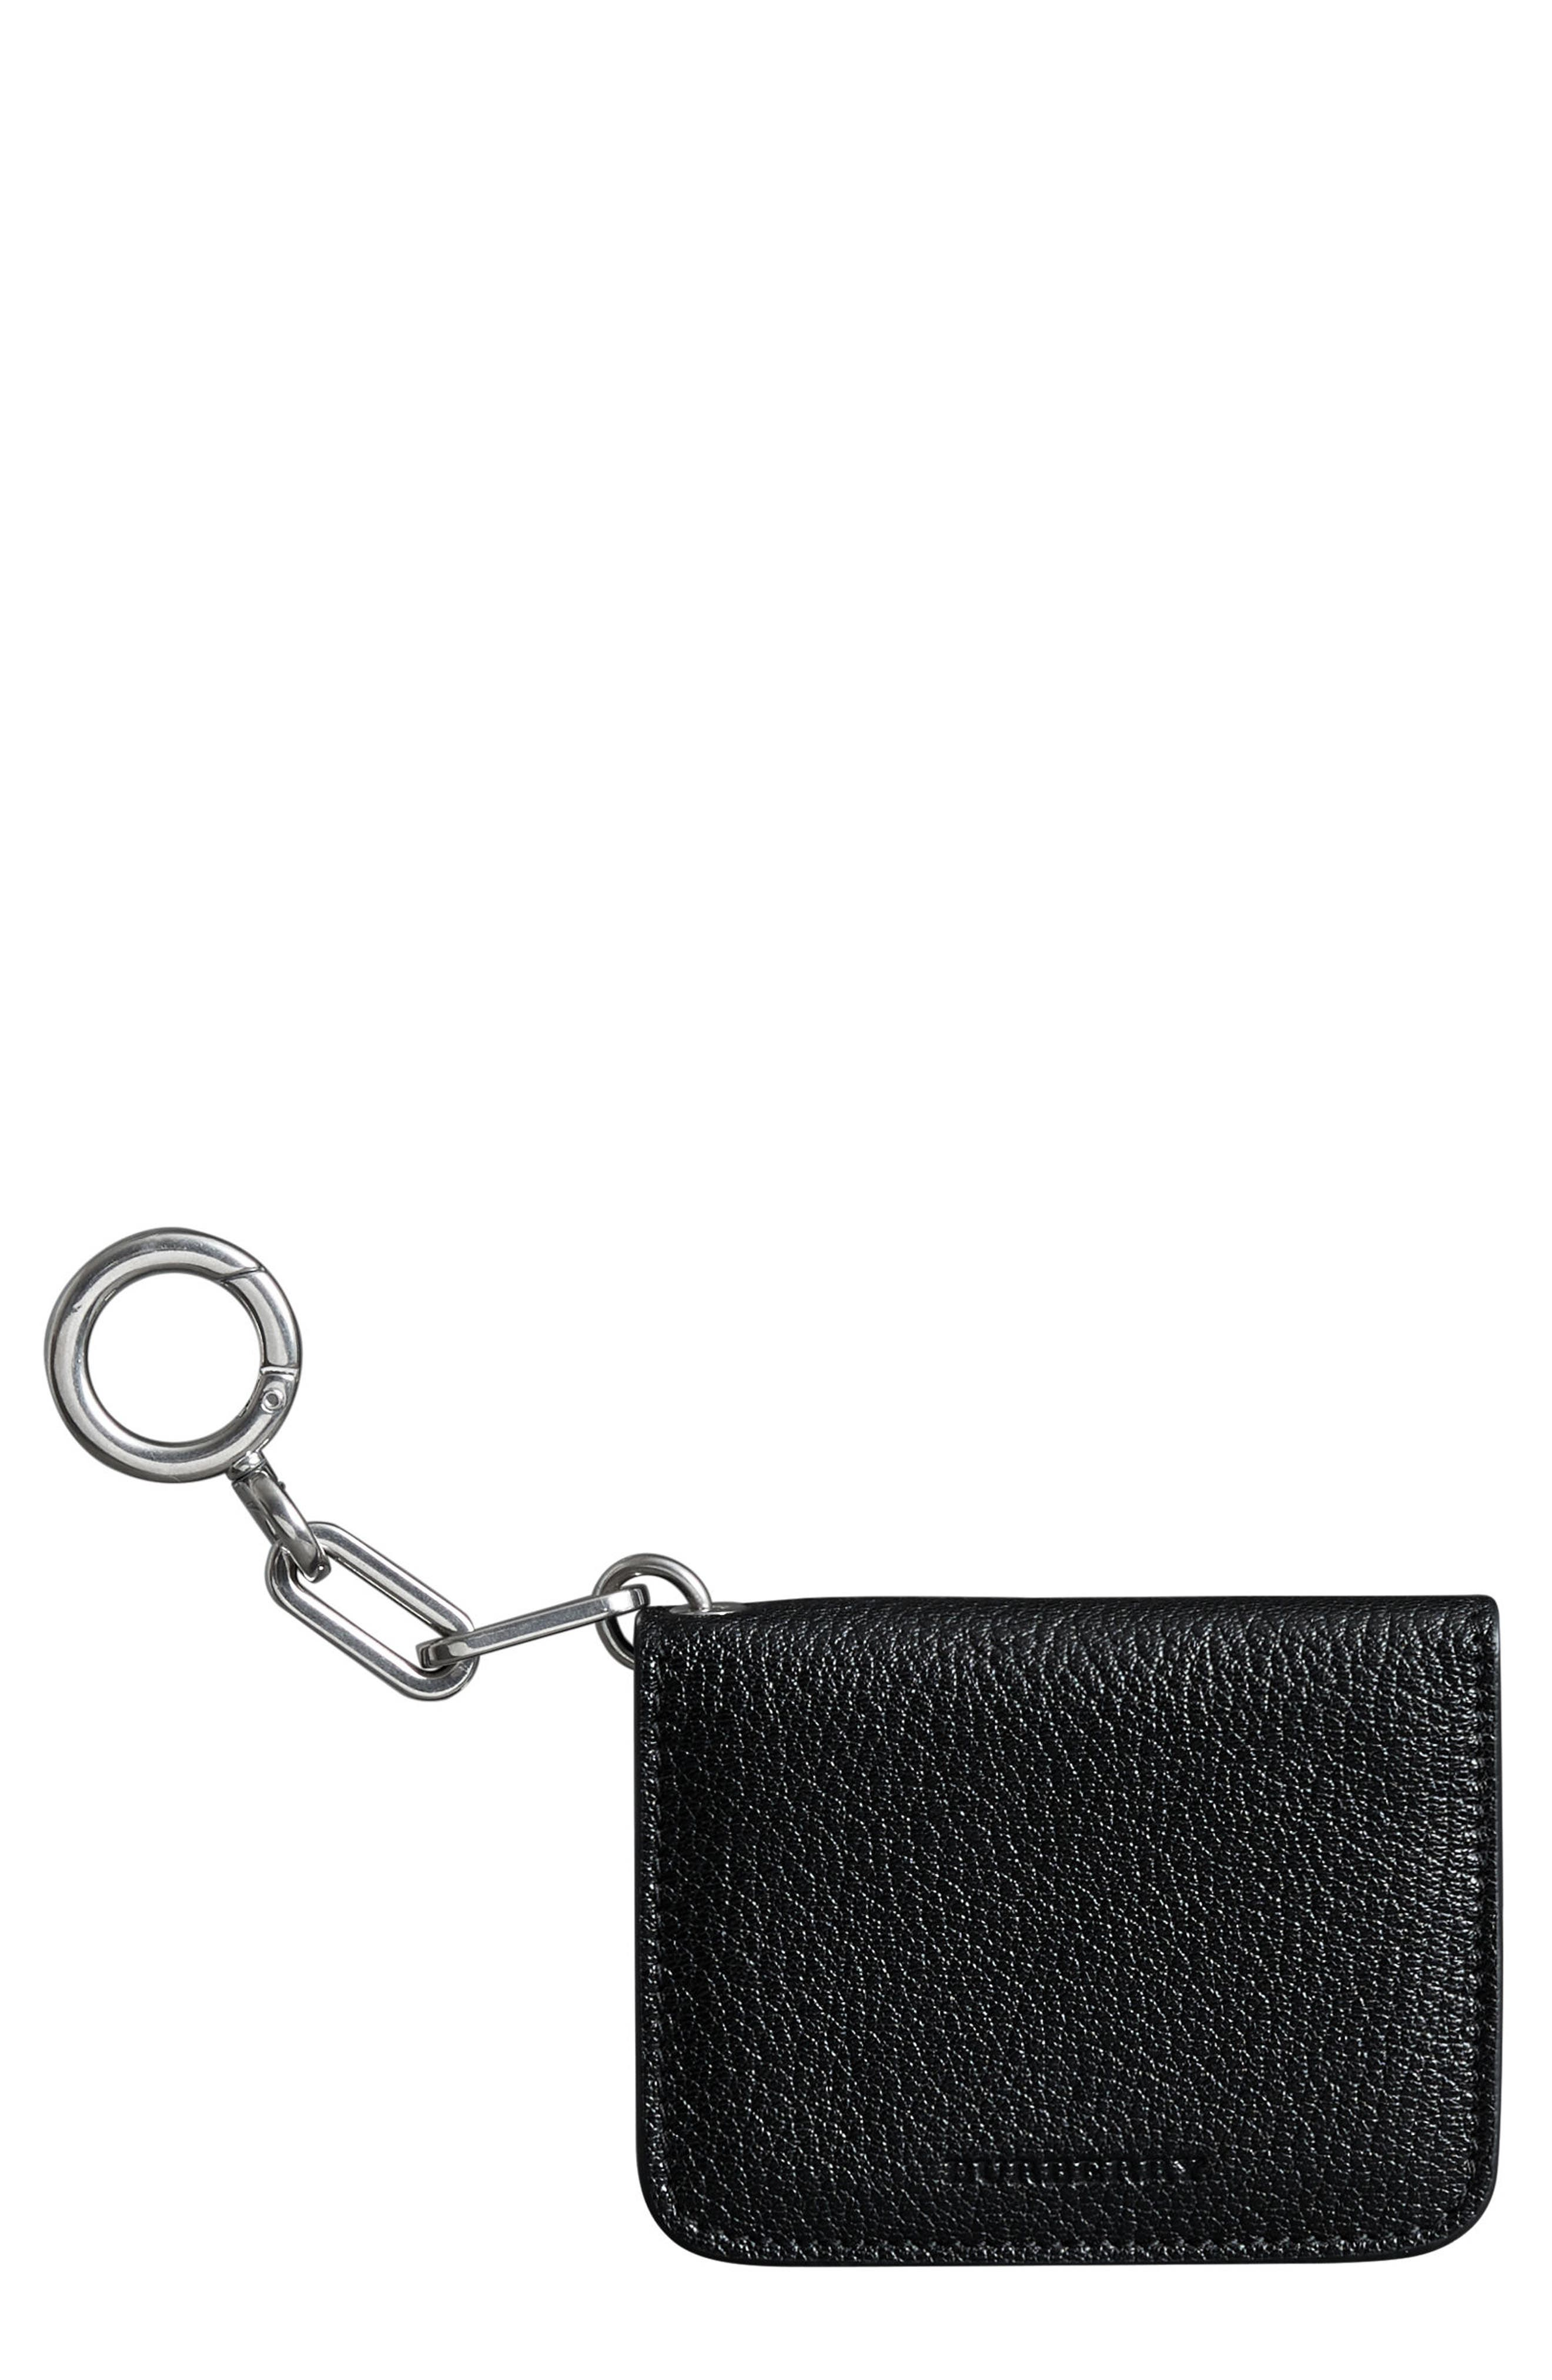 Womens Wallets On Sale in Outlet, Royal Blue, Leather, 2017, one size Saint Laurent